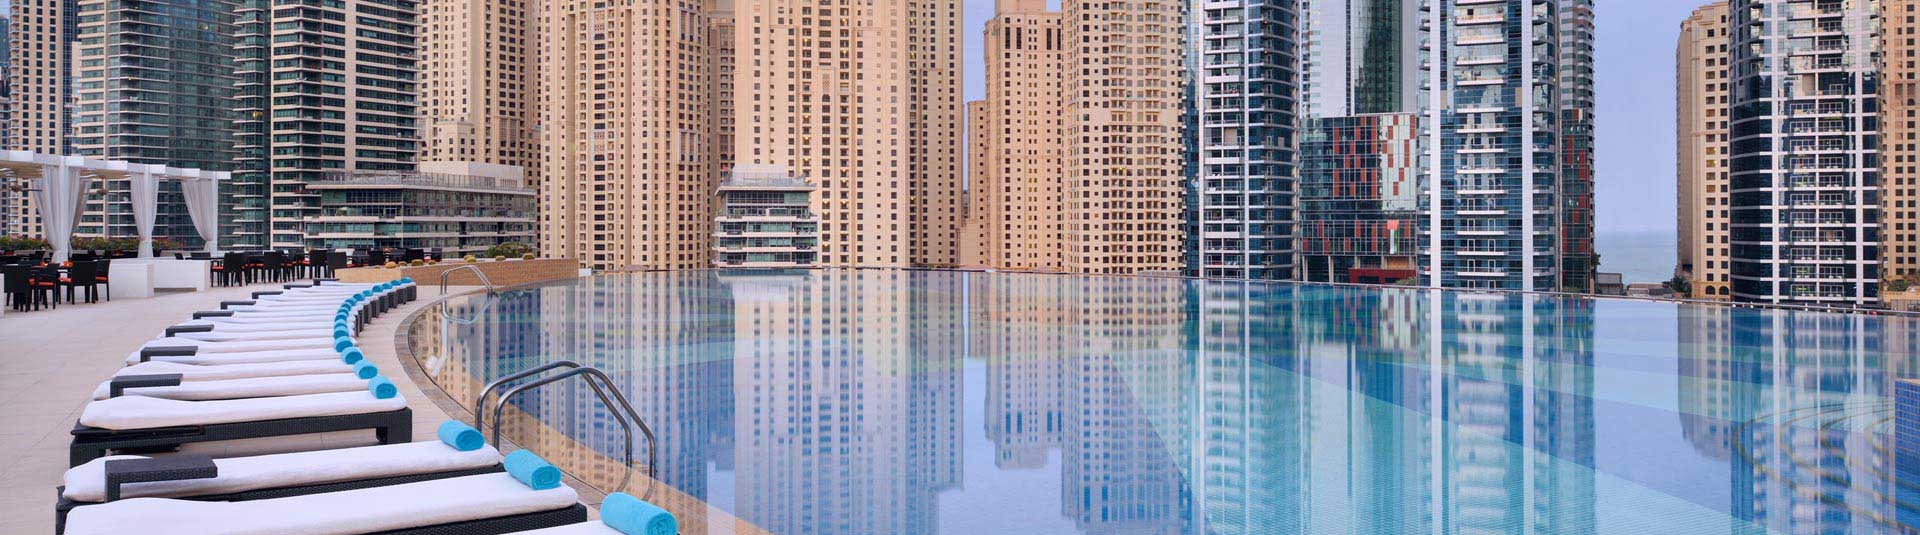 Hotels in dubai which are worth spending your money for List of hotels in dubai with contact details